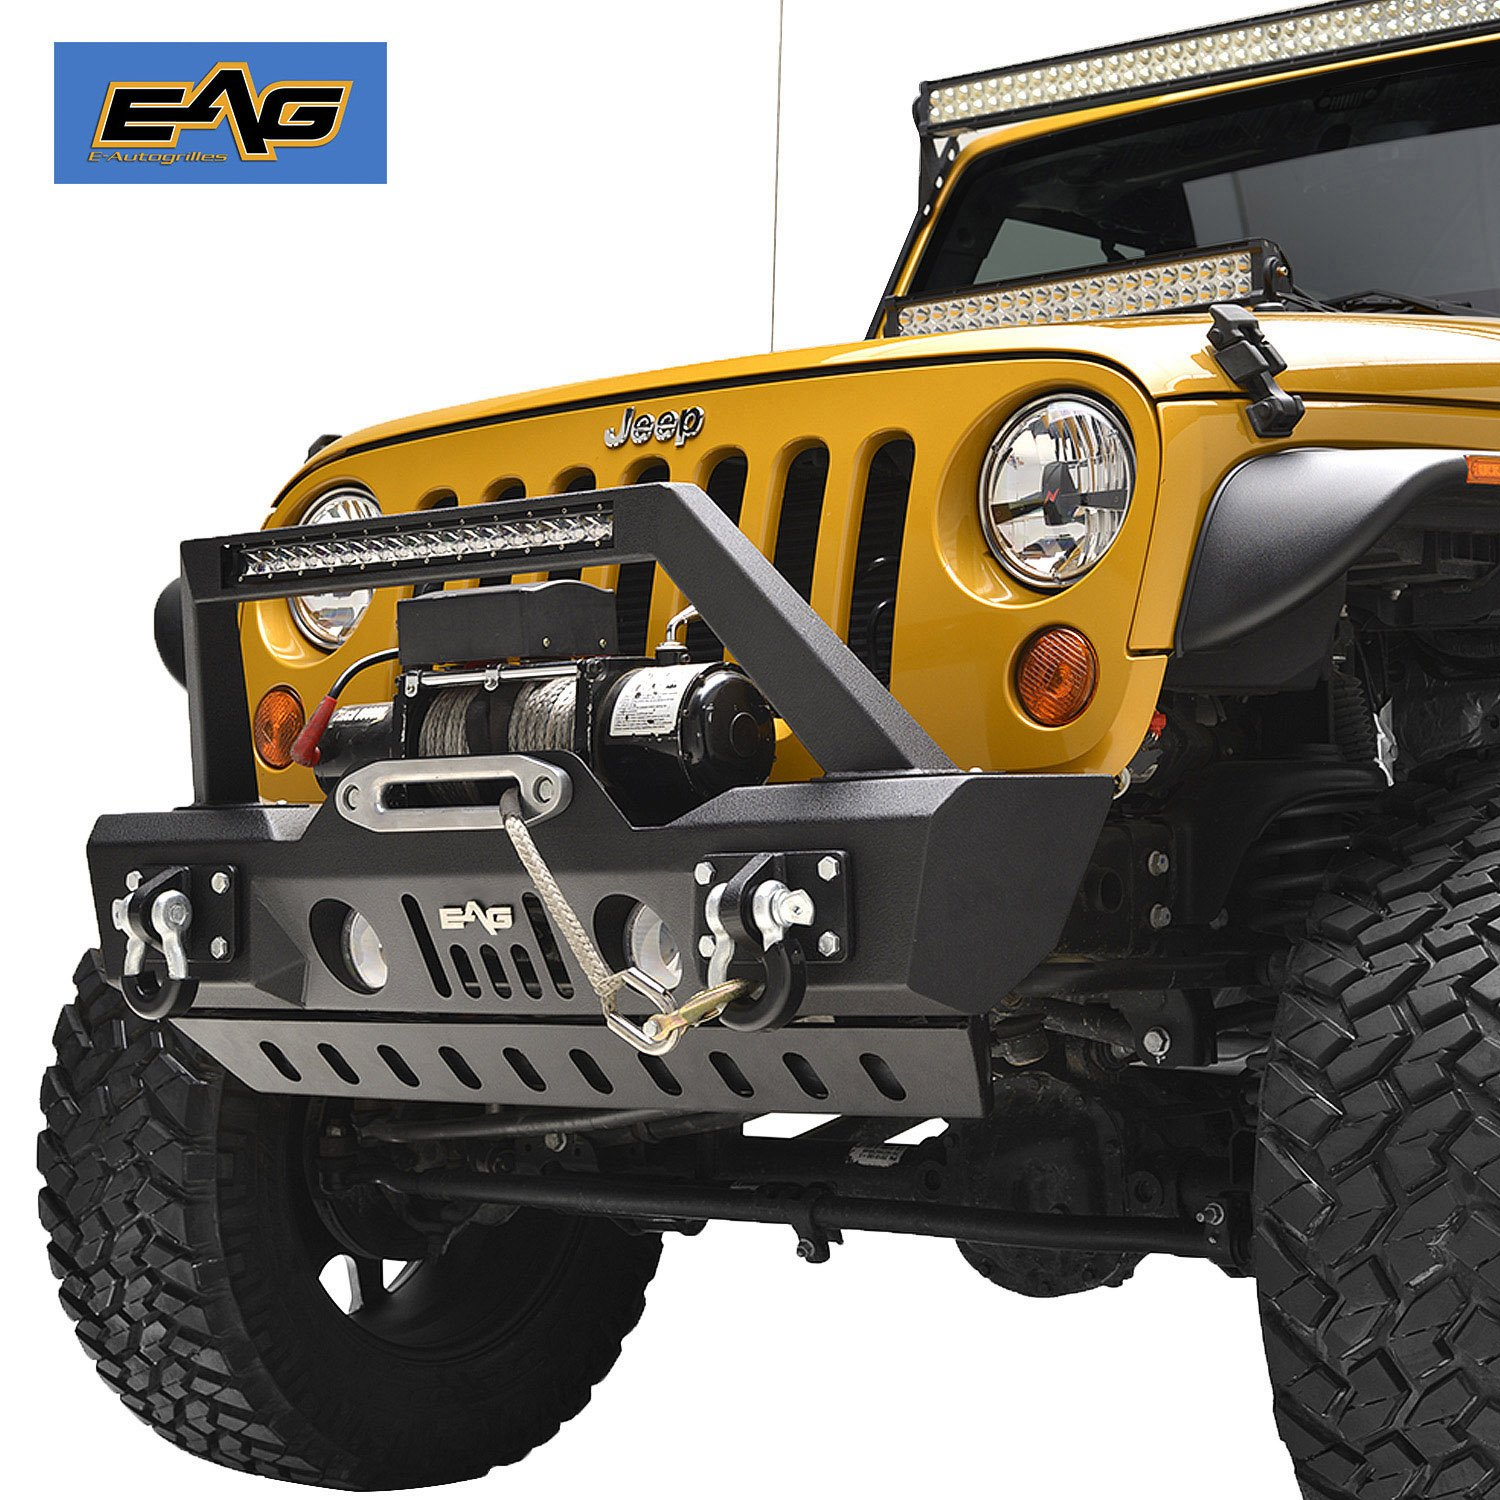 2f7ed55c3f Get Quotations · EAG Stubby Front Bumper With LED Light and Skid Plate for  07-18 Jeep Wrangler